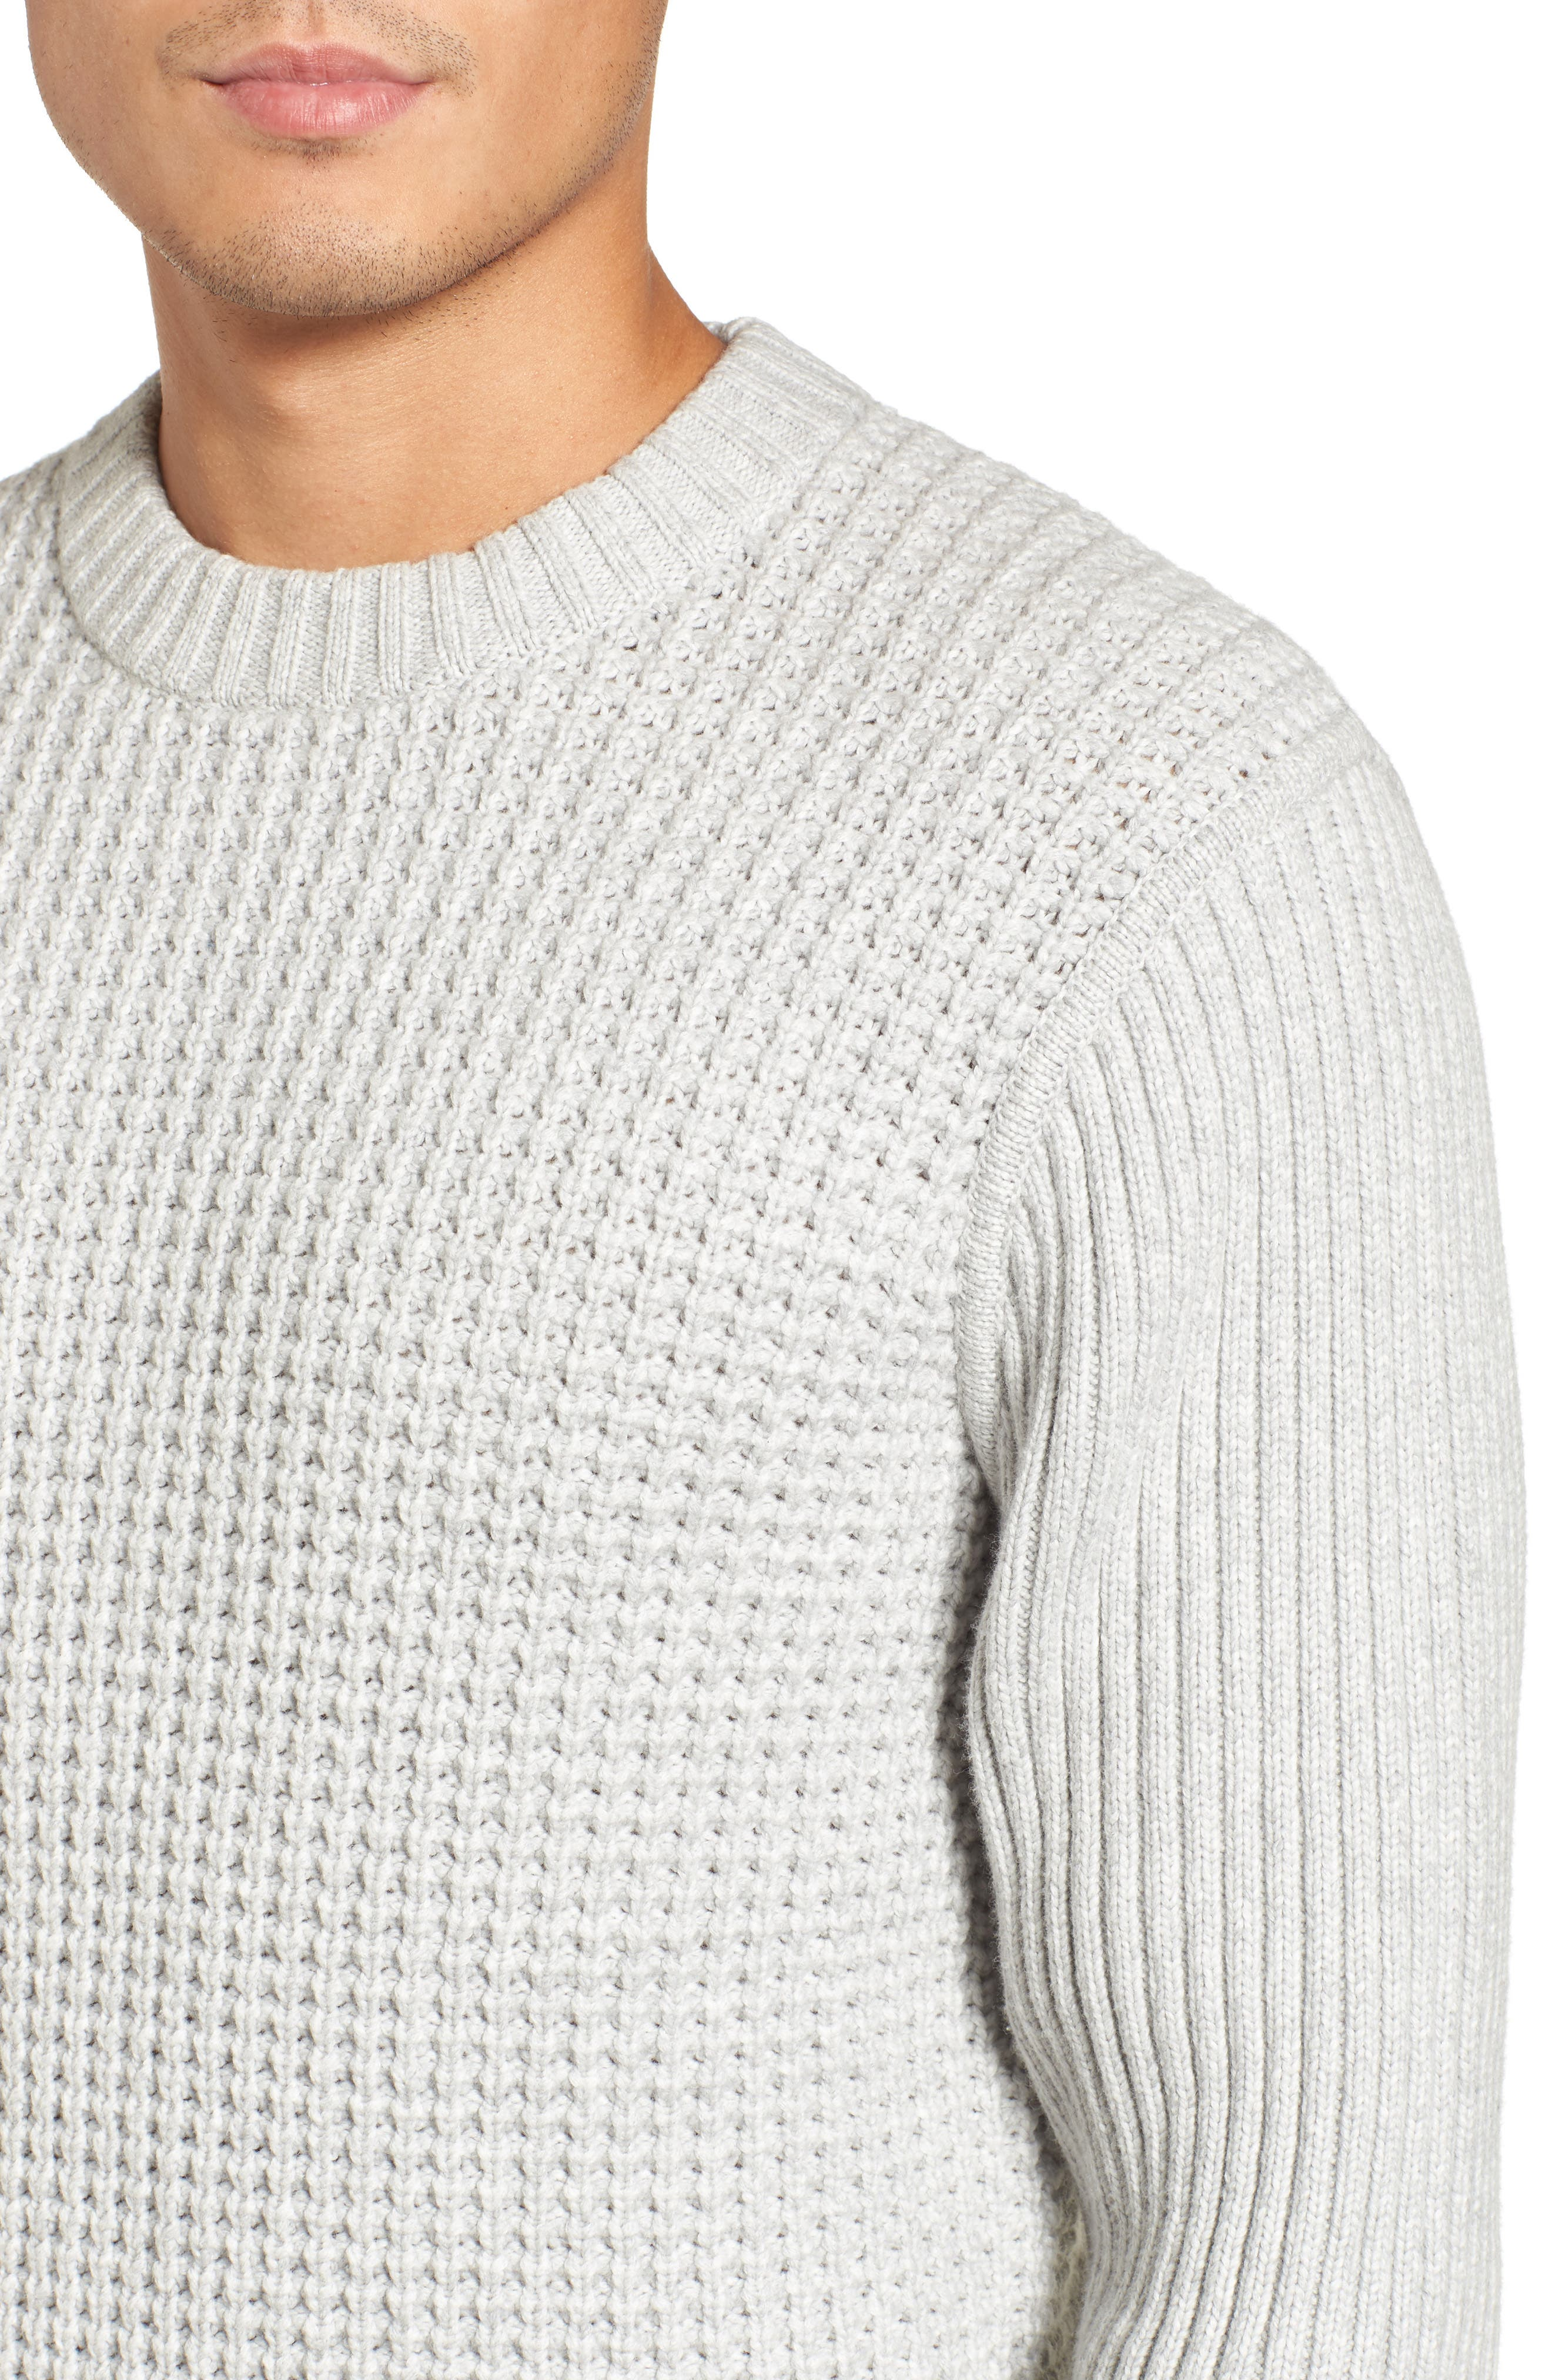 Heavyweight Mixed Knit Crewneck Sweater,                             Alternate thumbnail 4, color,                             050